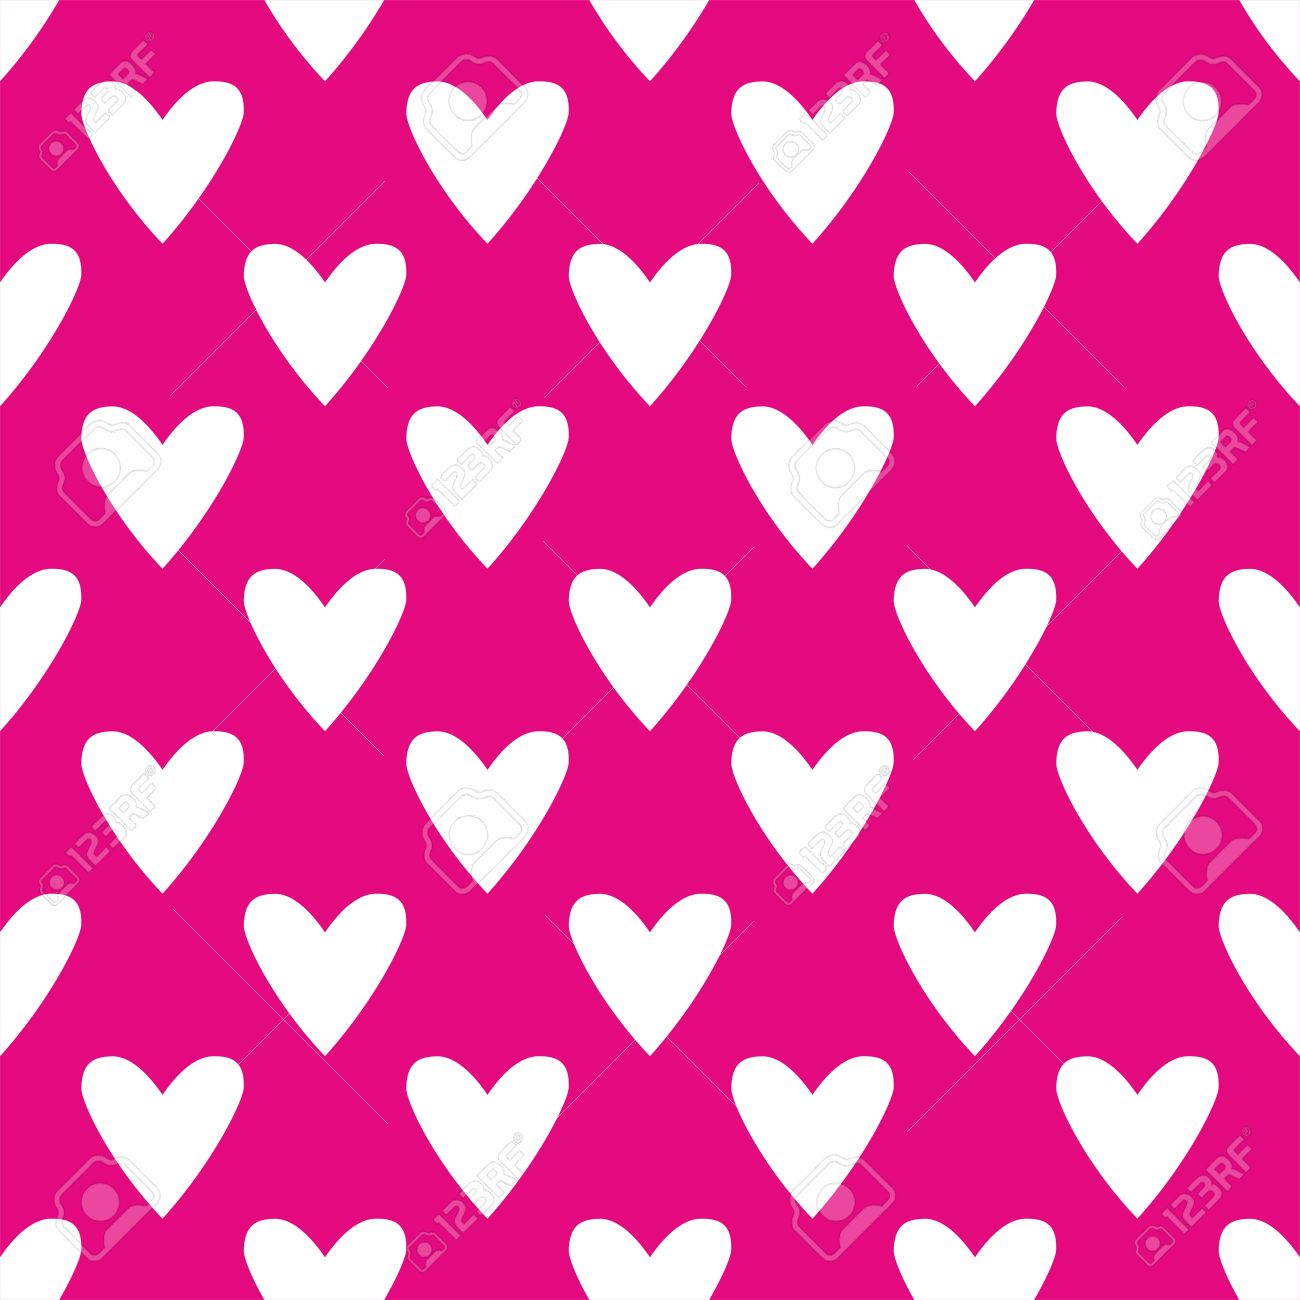 Tile Cute Vector Pattern With White Hearts On Pastel Pink Background For Seamless Decoration Wallpaper Stock